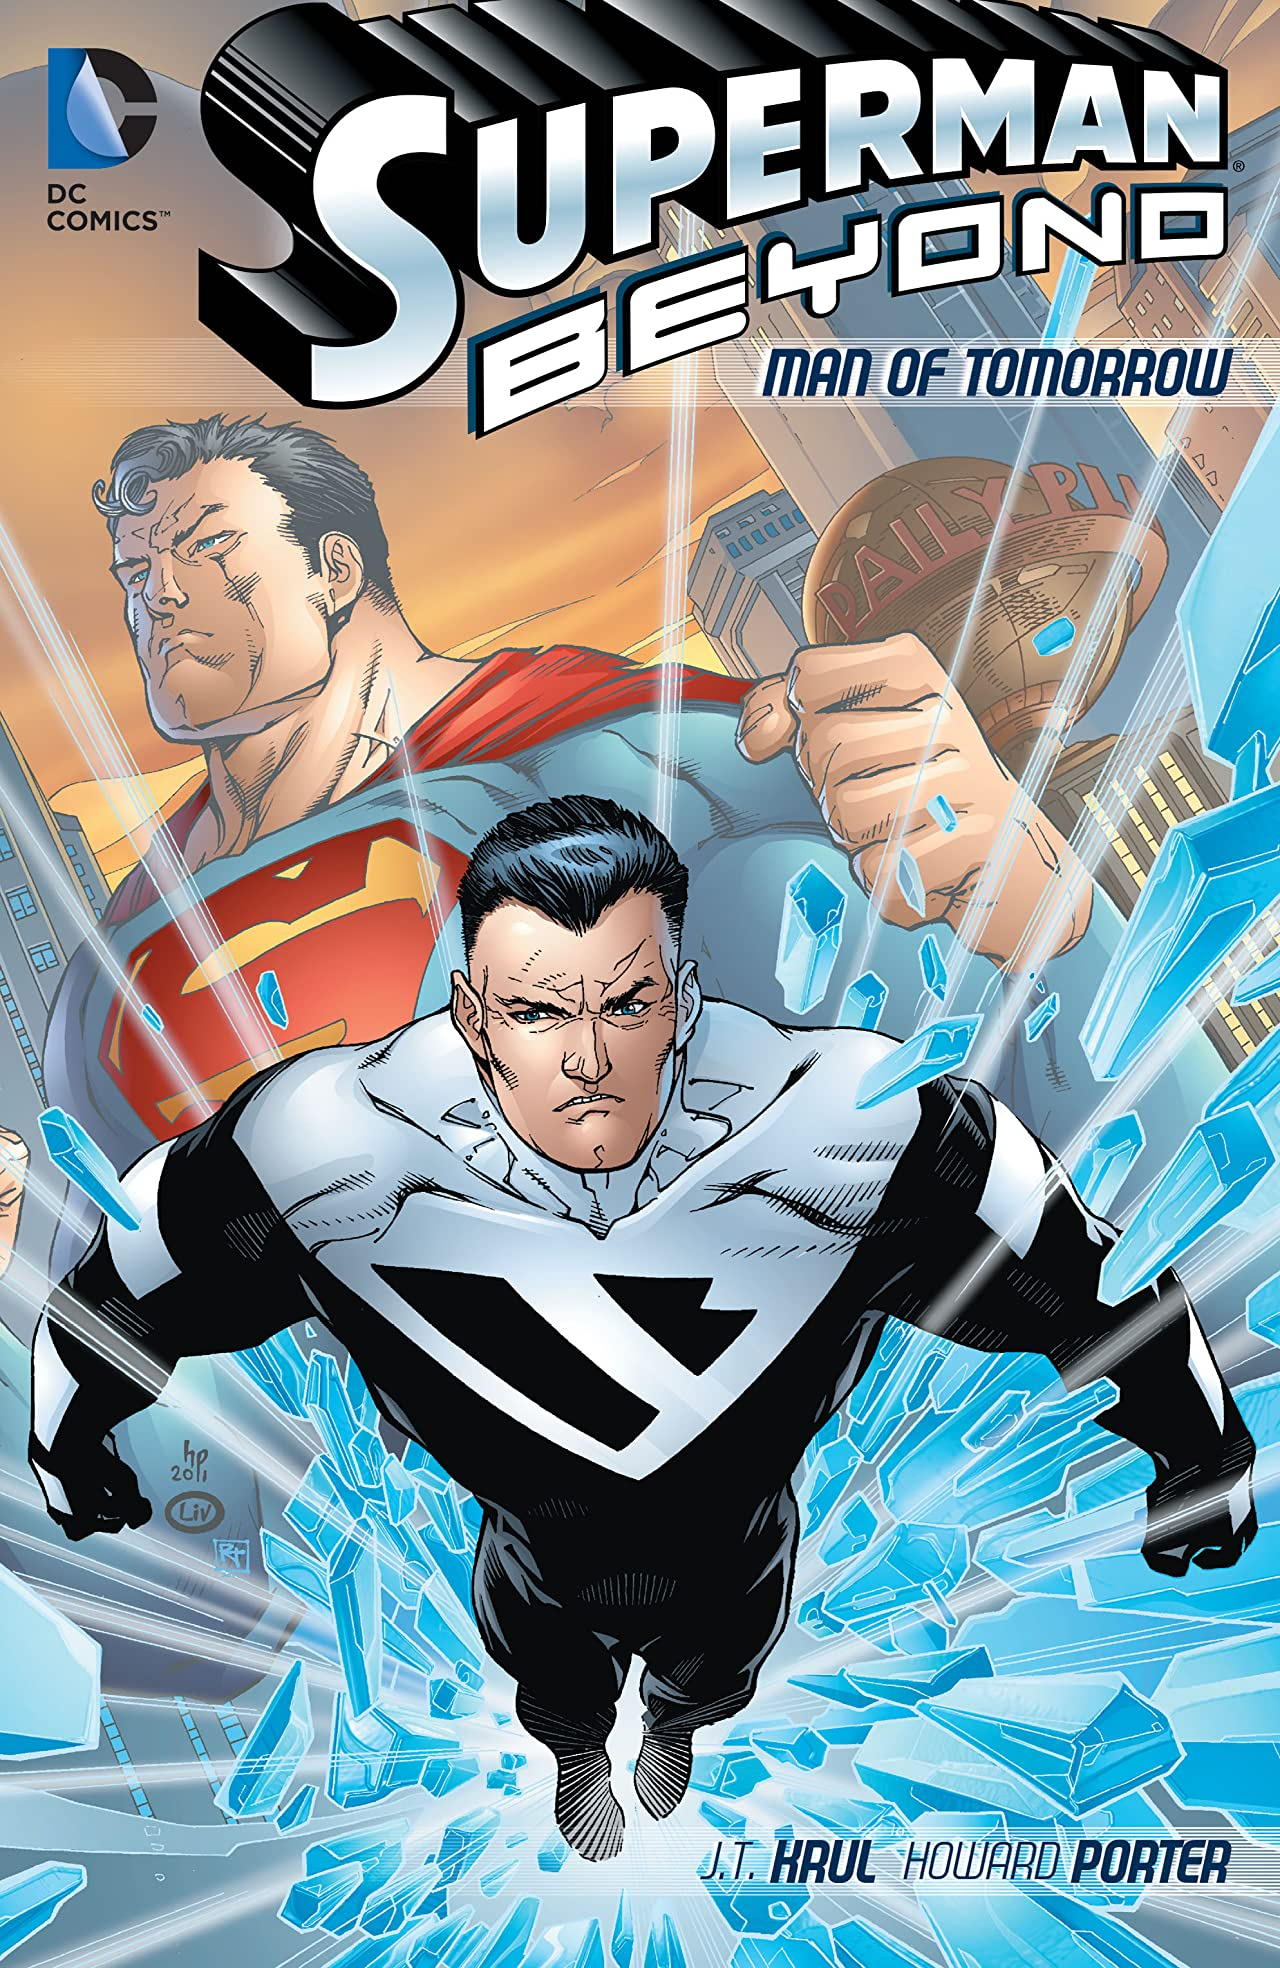 Superman Beyond (2012-2013): Man of Tomorrow